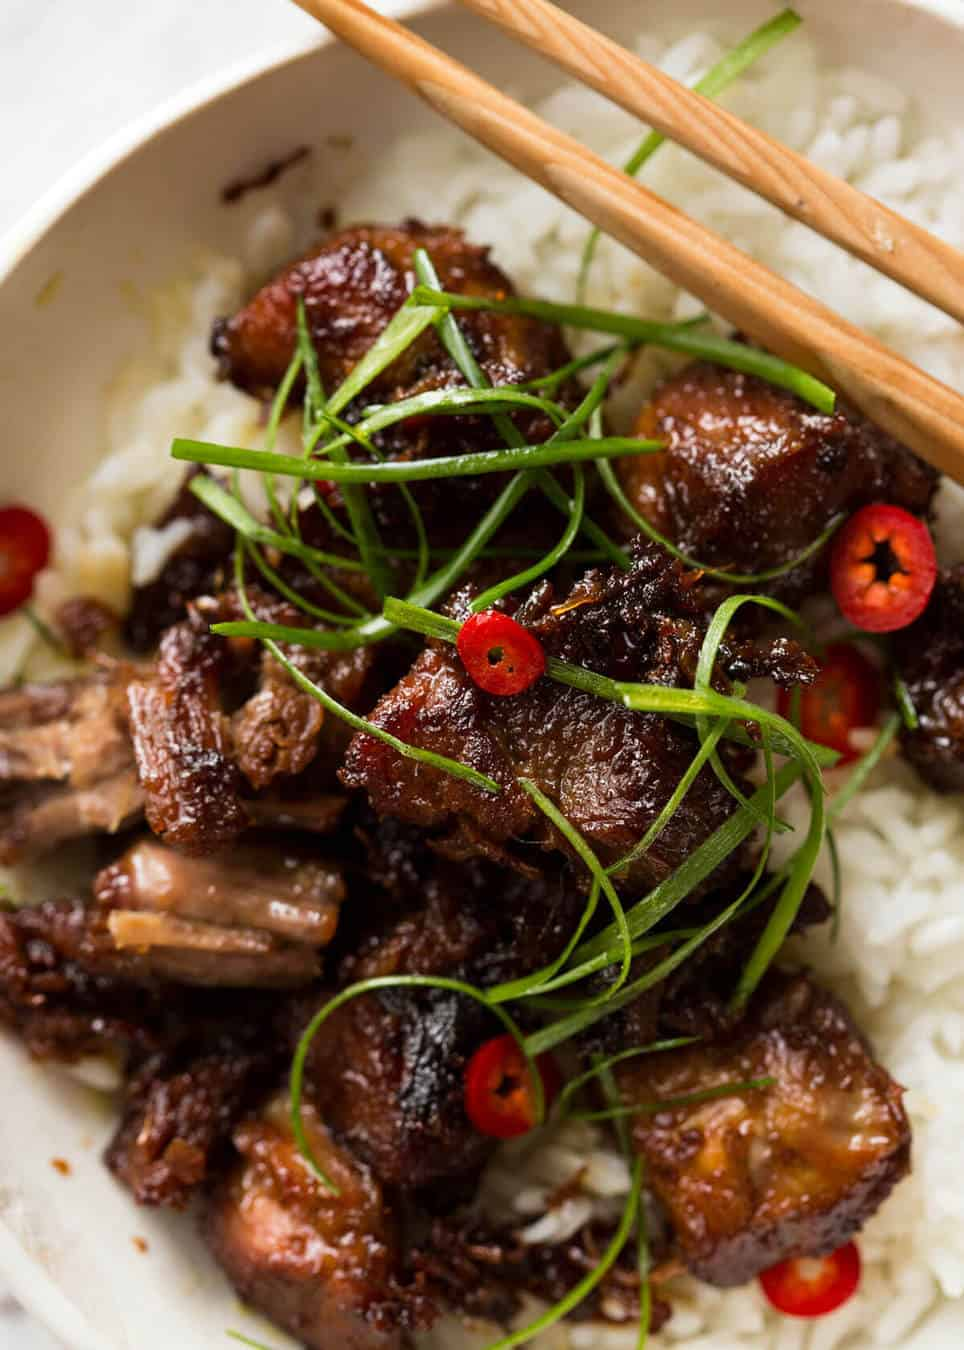 Vietnamese Caramel Pork is a simple, magical recipe - tender pork in a sweet savoury glaze and no hunting down unusual ingredients! www.recipetineats.com